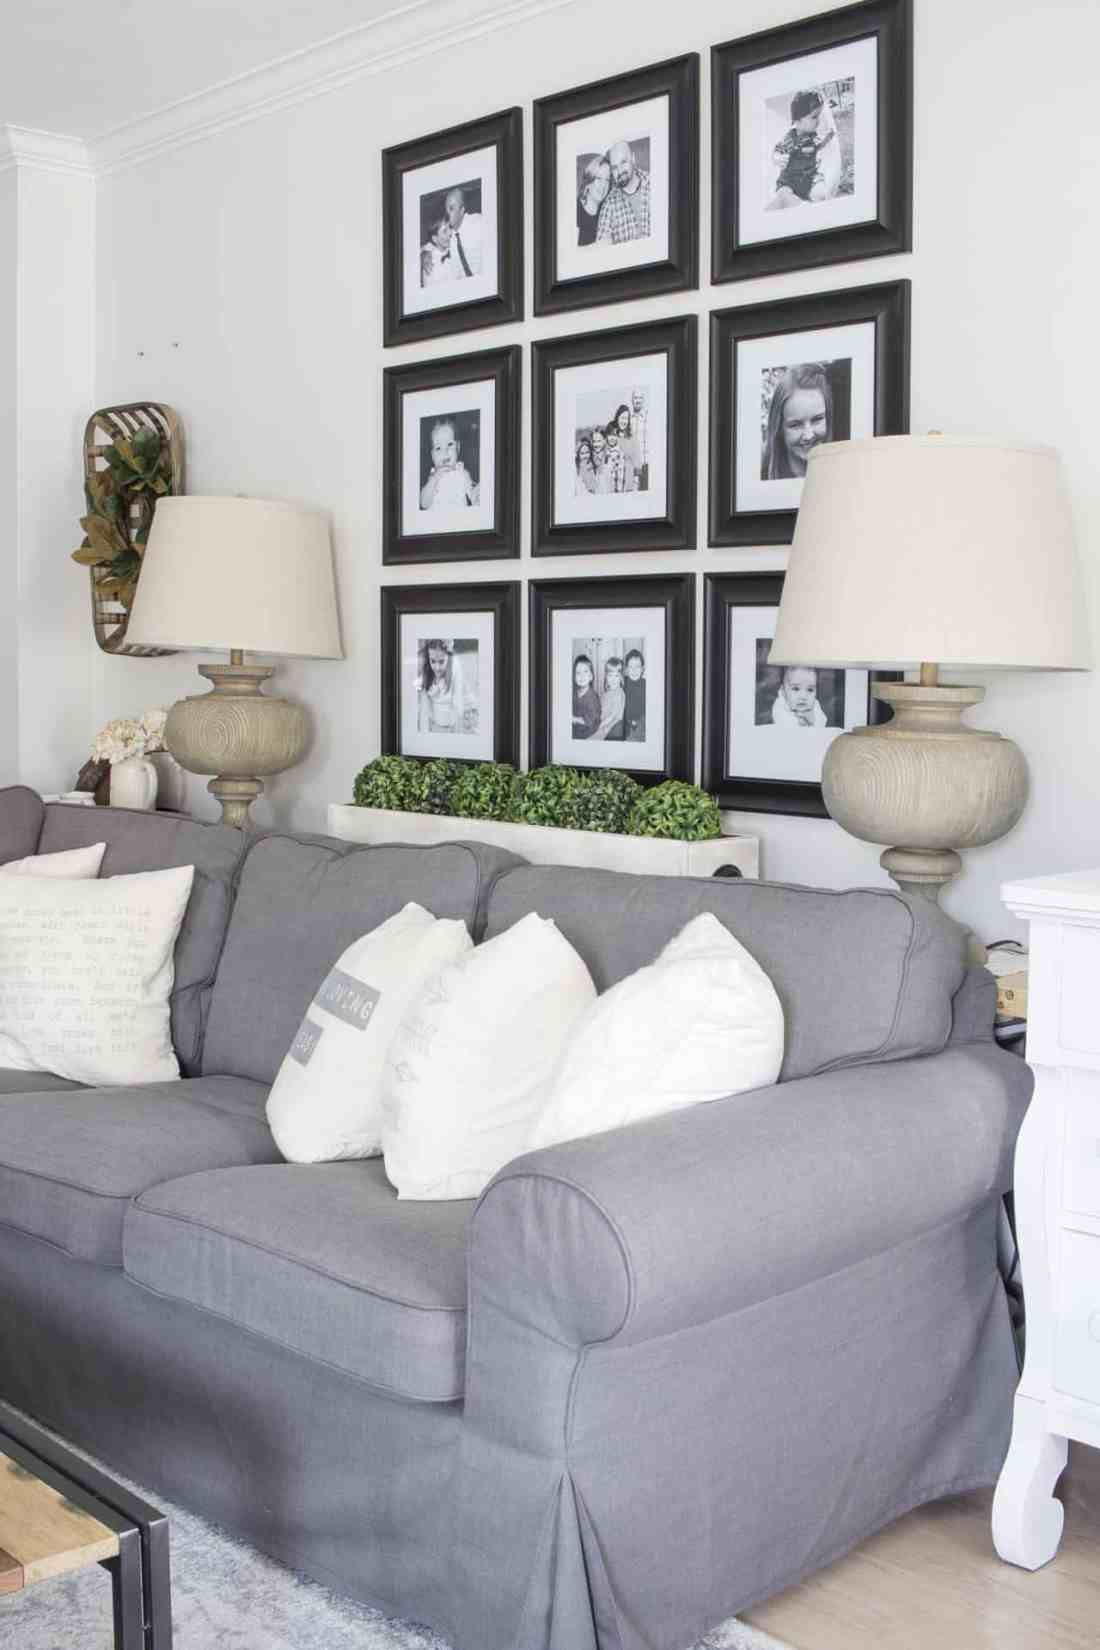 black and white grid gallery wall behind sectional couch